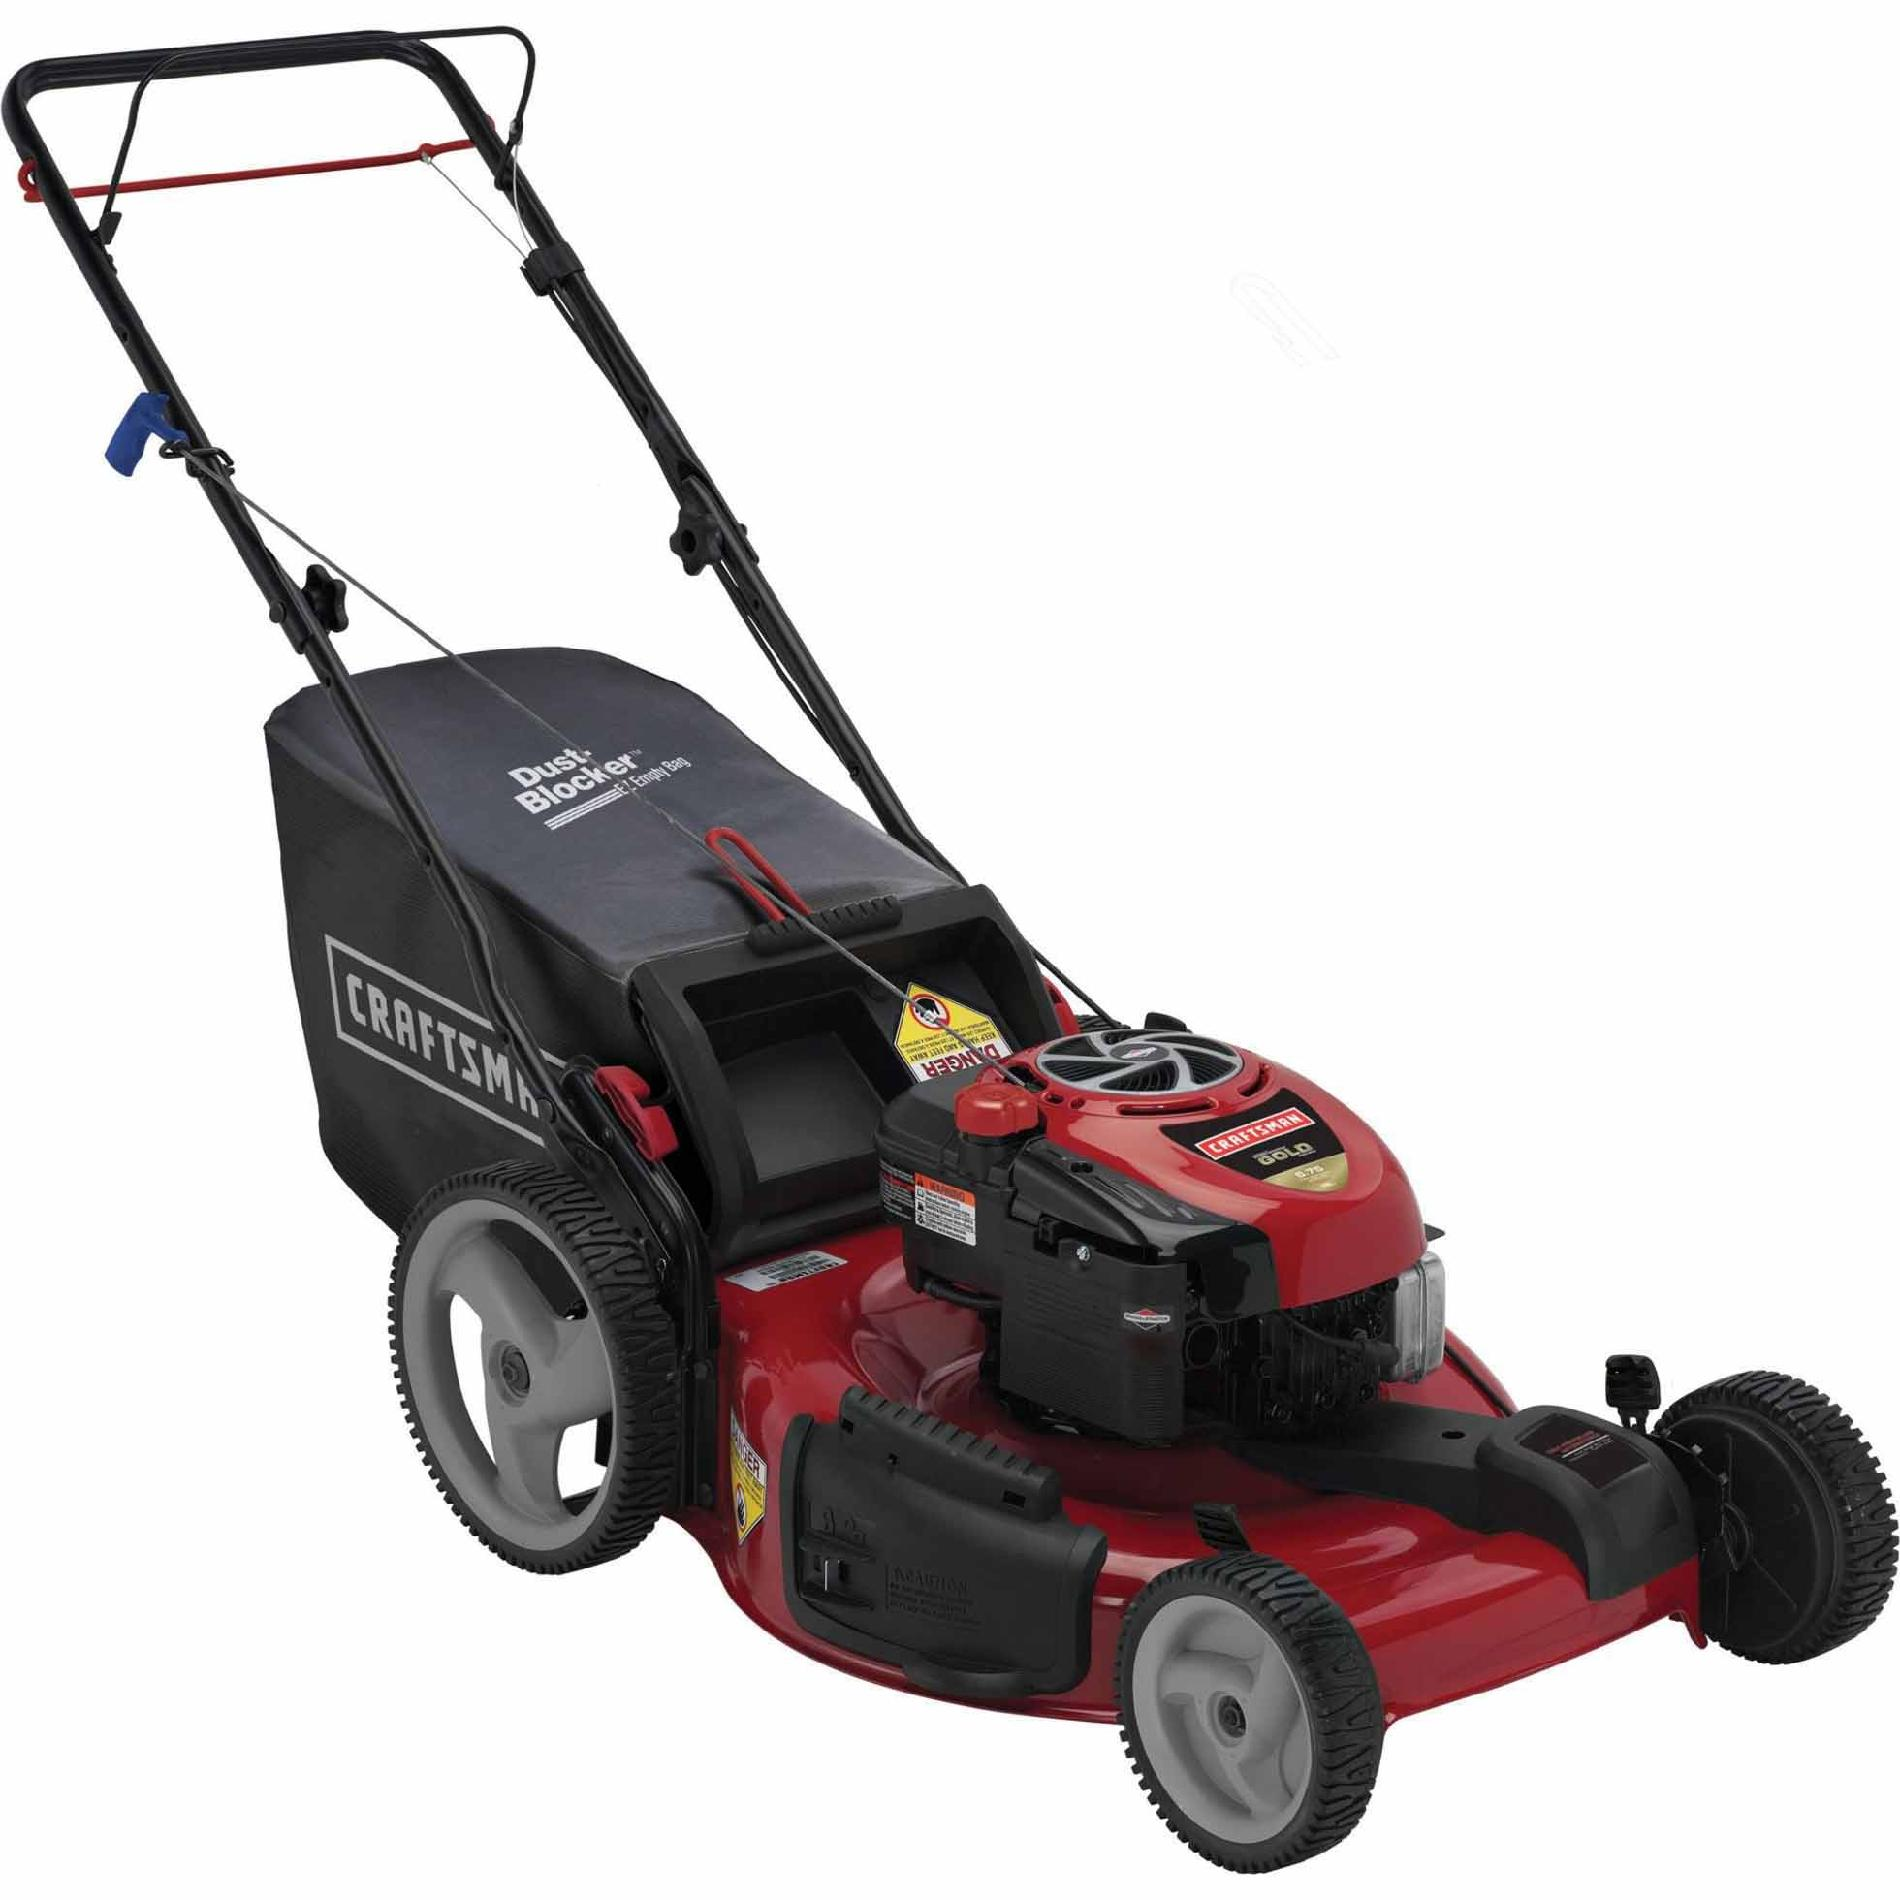 Lawn Mower Craftsman 190cc Briggs And Stratton Gold Engine 22 Quot Front